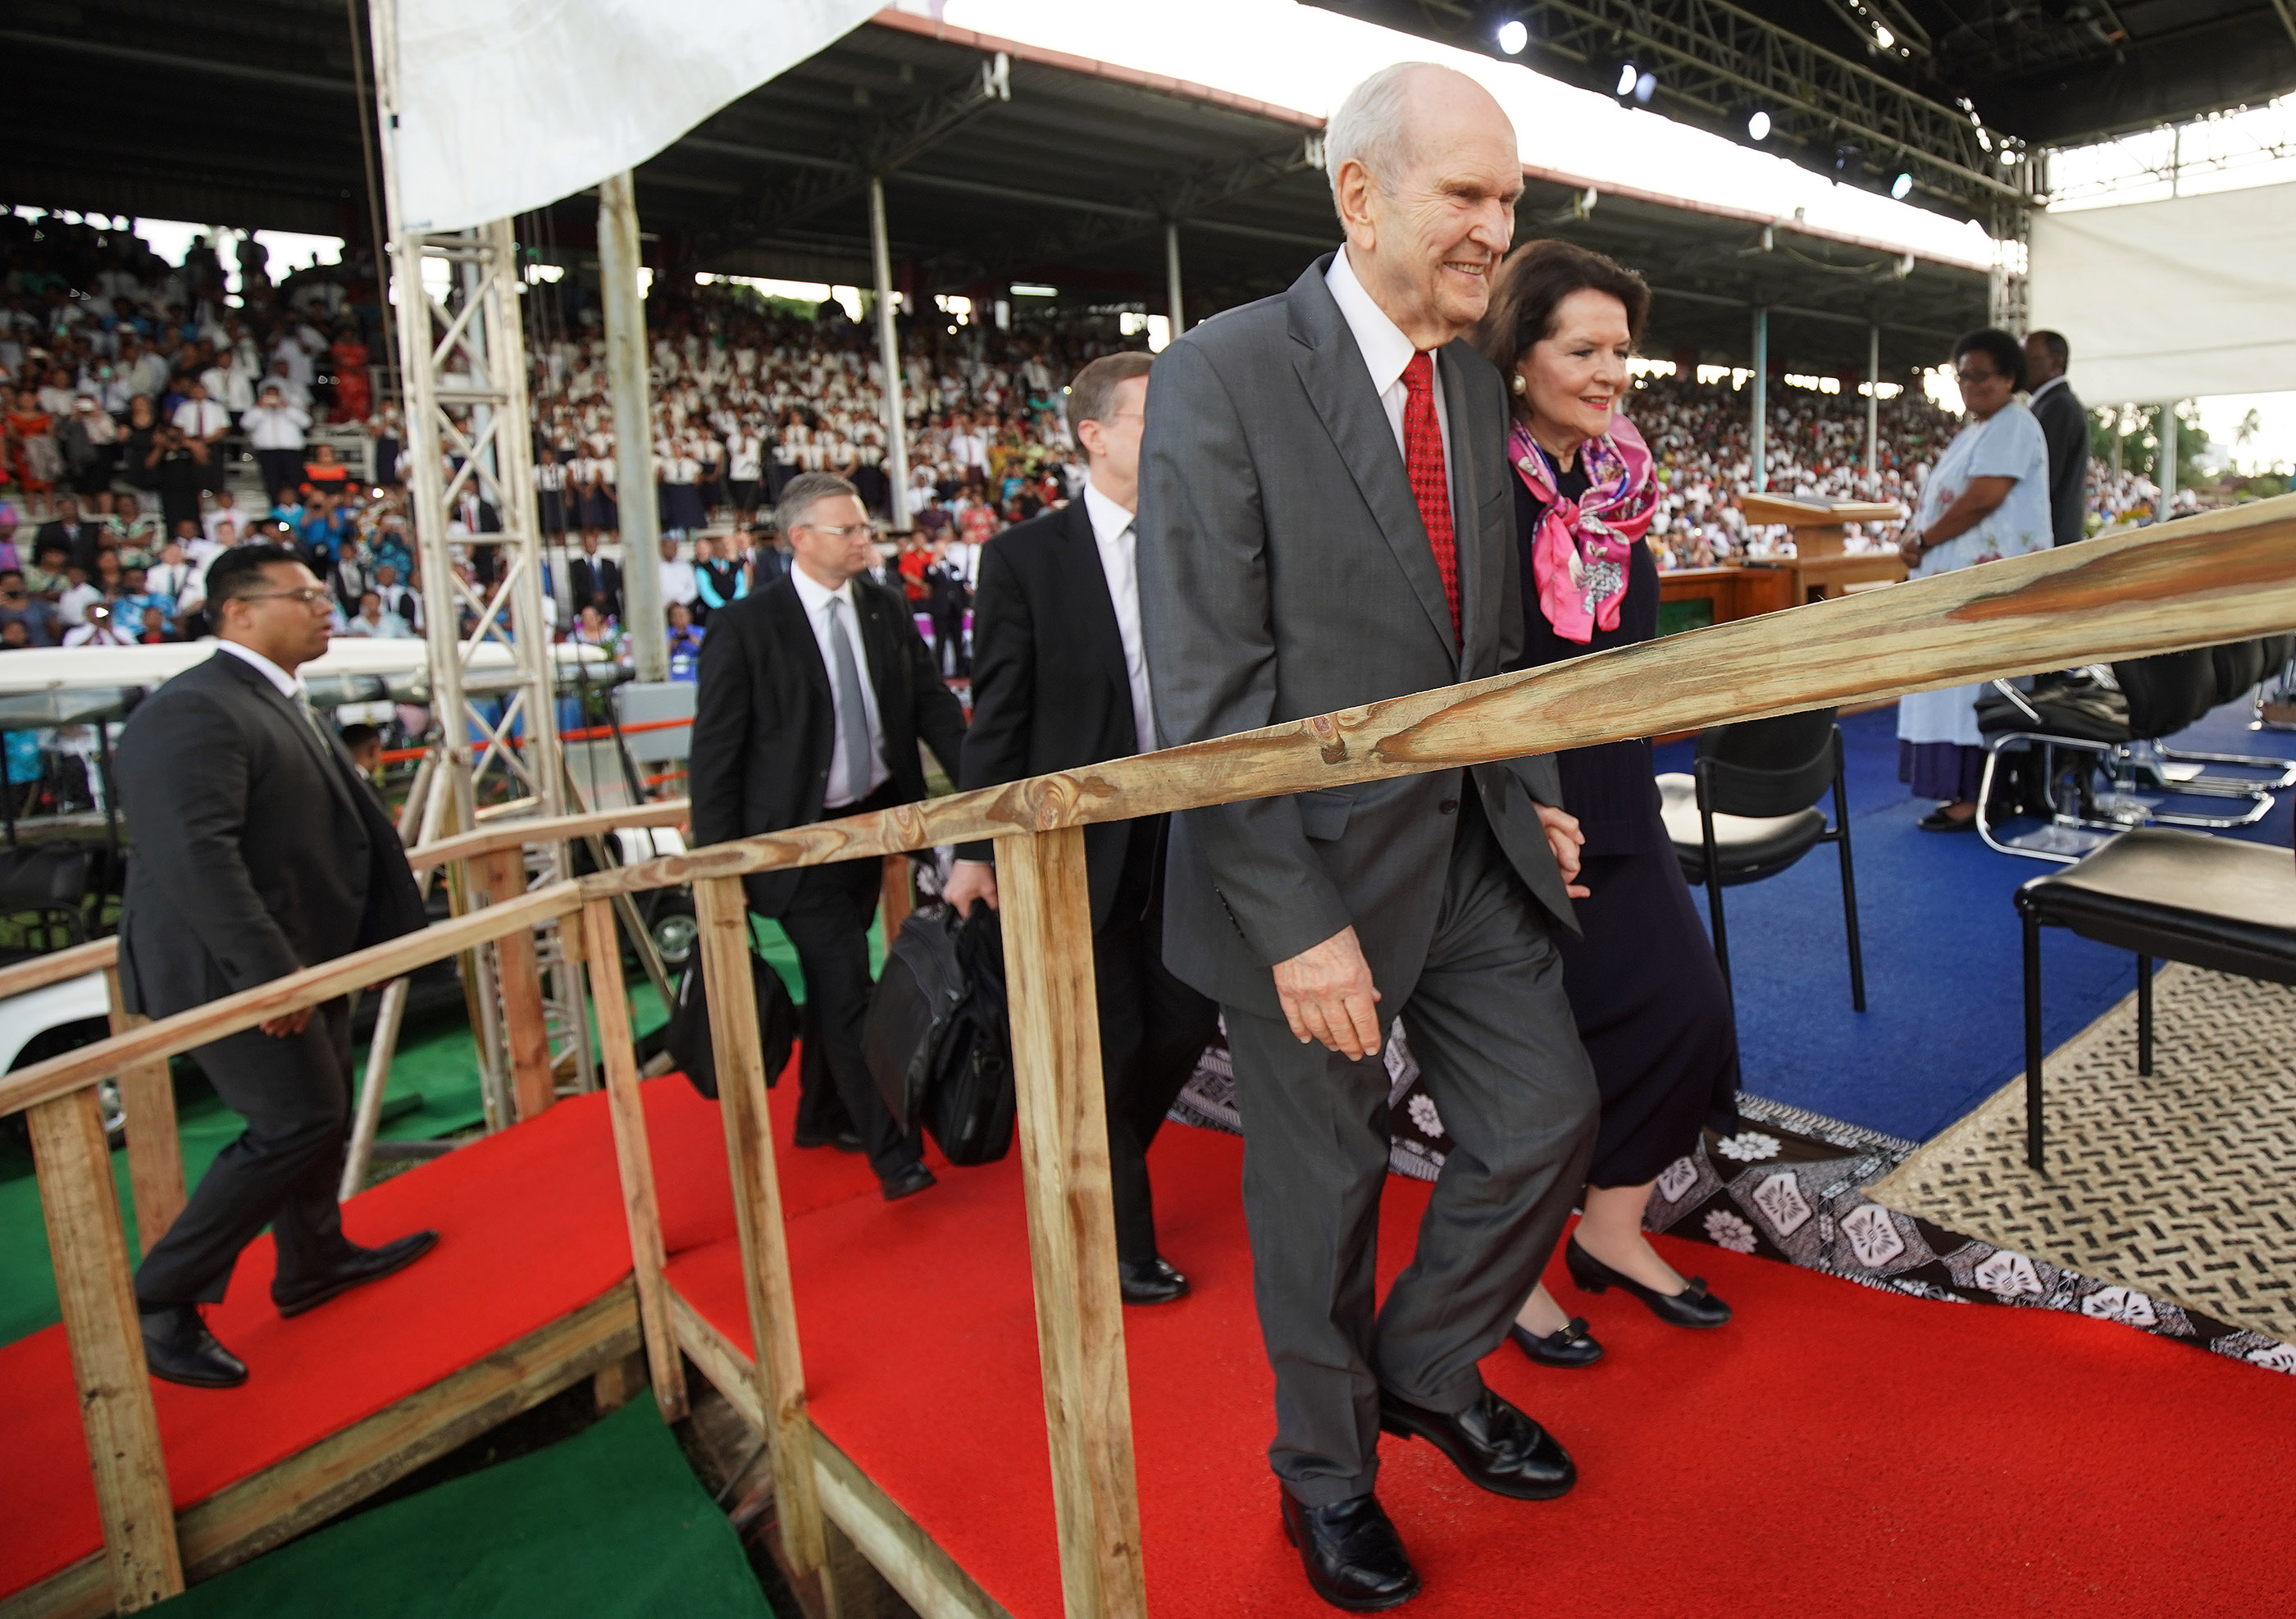 President Russell M. Nelson of The Church of Jesus Christ of Latter-day Saints and his wife Sister Wendy Nelson walk to the stand during a devotional at Ratu Cakobau stadium in Nausori, Fiji on May 22, 2019.